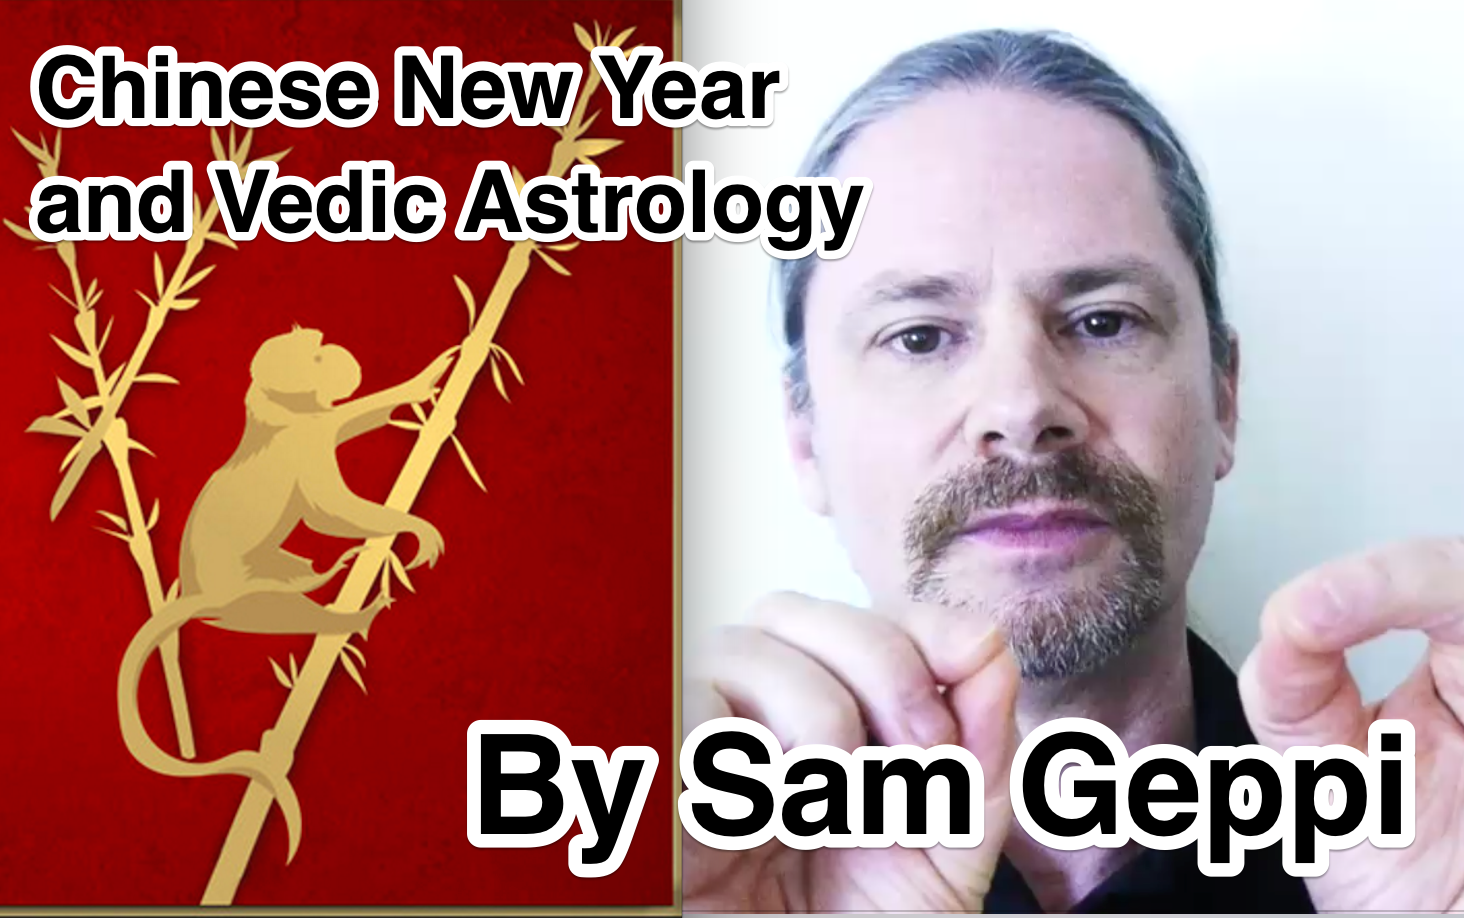 CHINESE NEW YEAR AND VEDIC ASTROLOGY